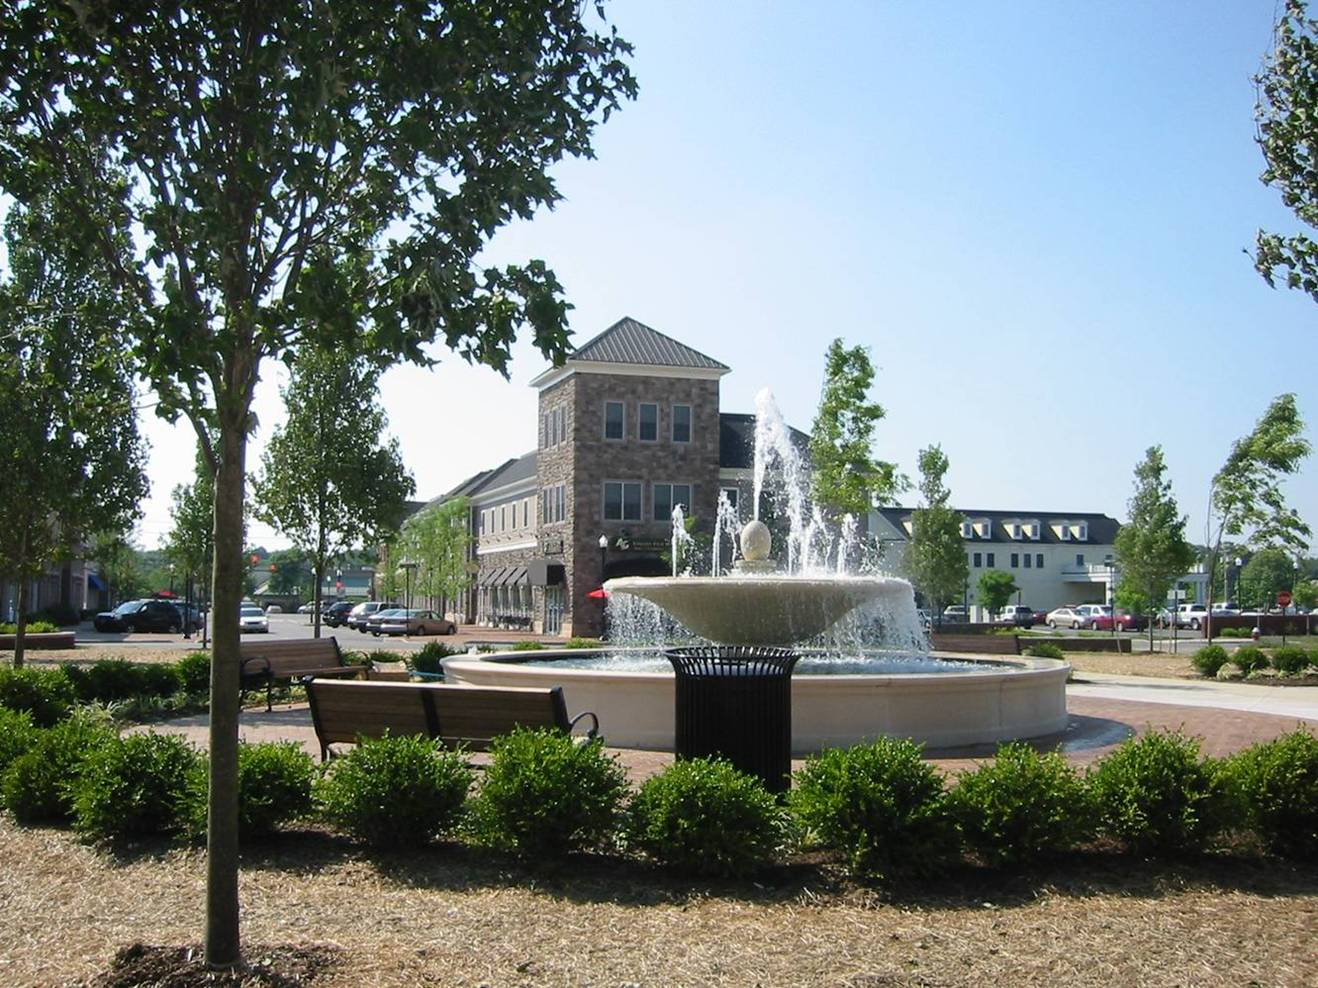 Village Center Plaza and Fountains